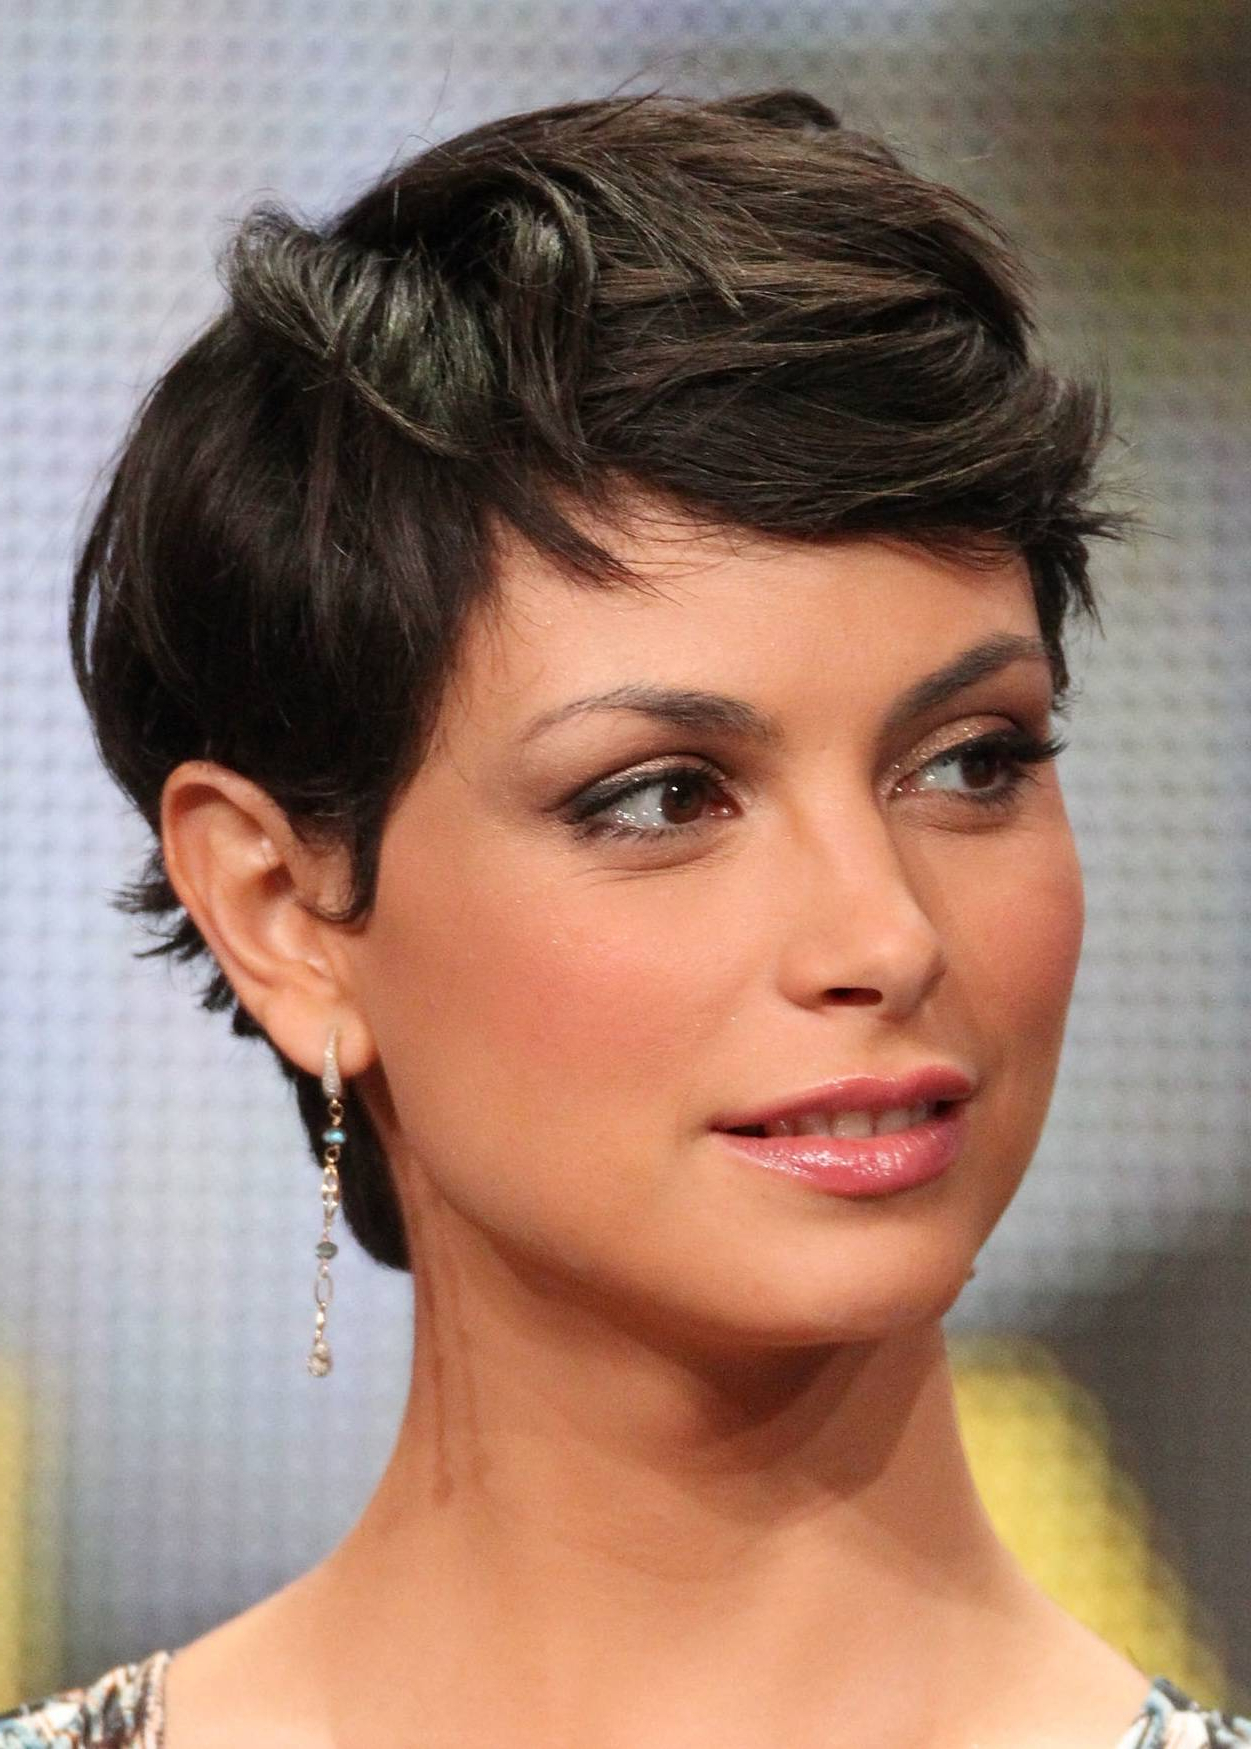 Short Pixie Hairstyles For Women • Your Hair Club With Regard To Cropped Hairstyles For Round Faces (View 13 of 20)